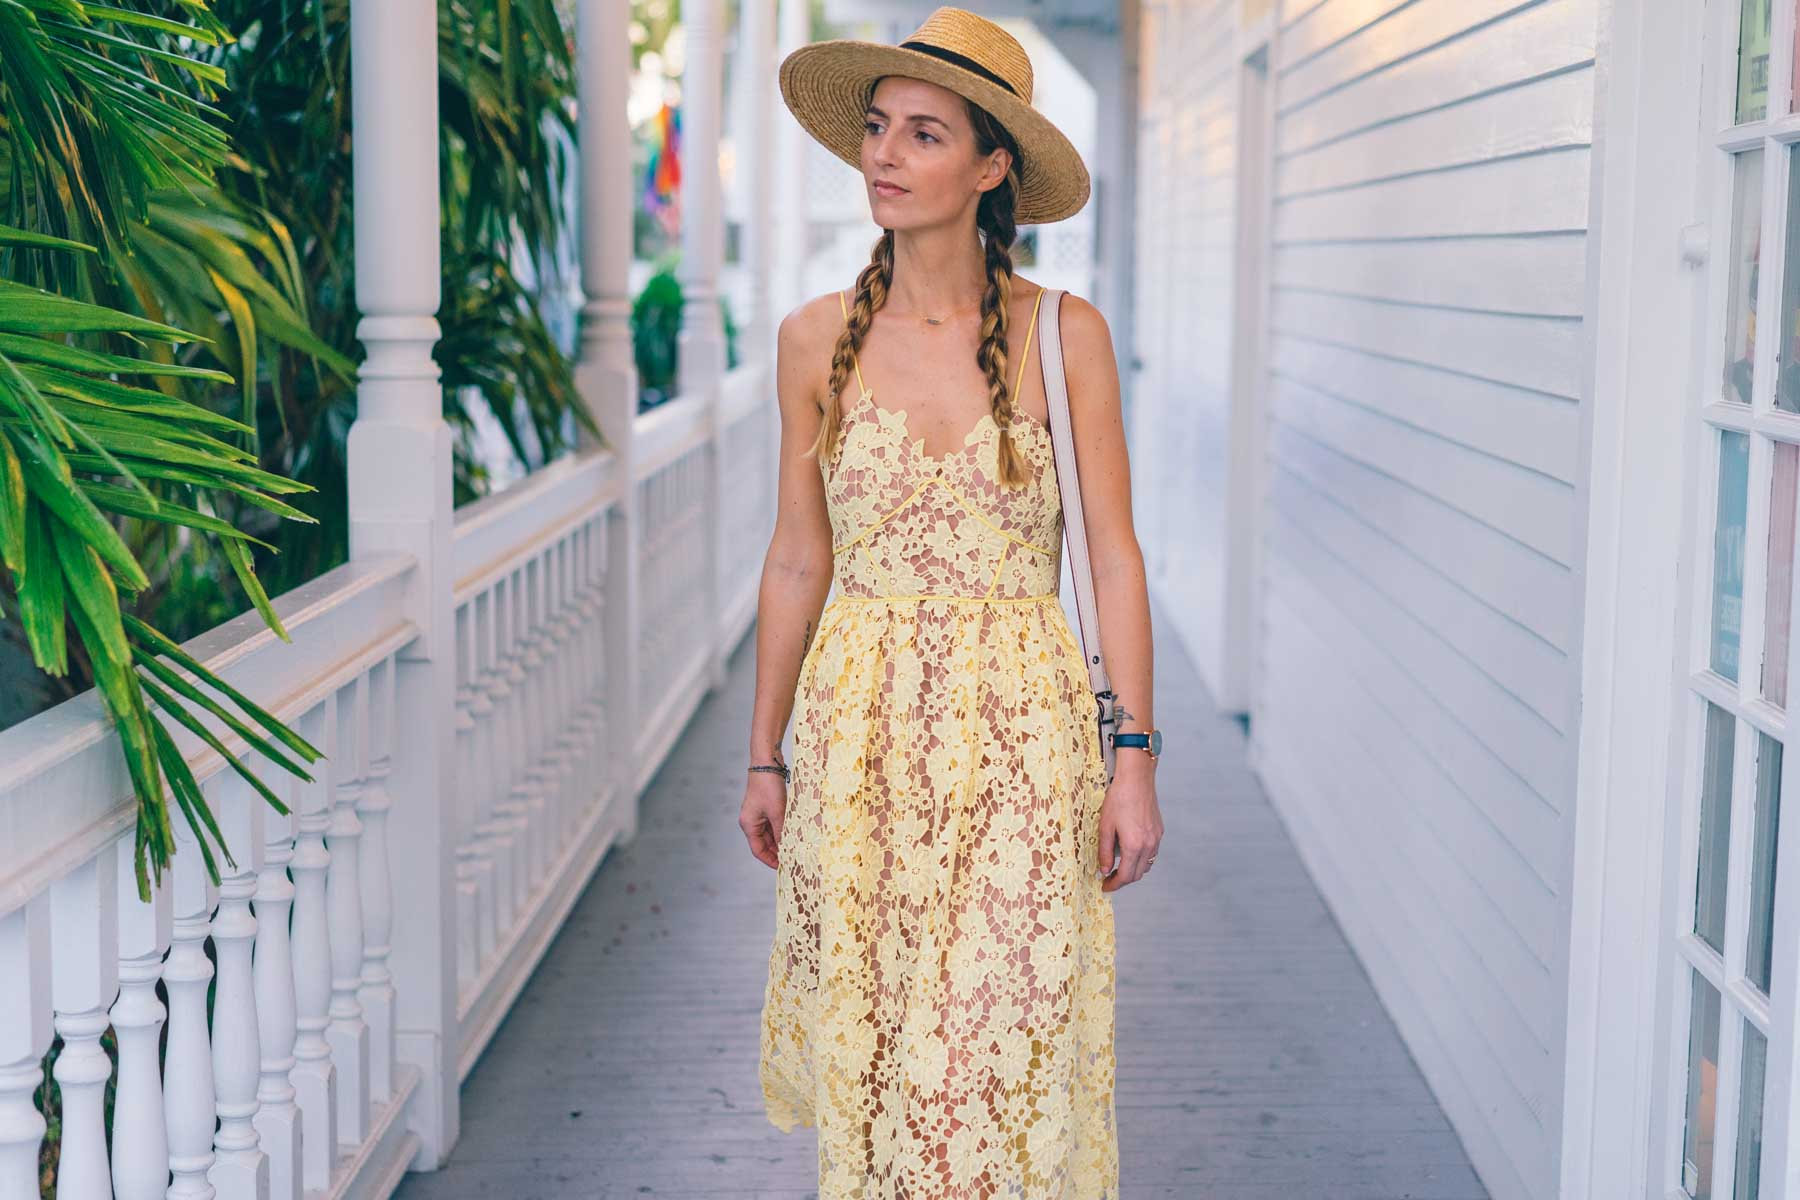 Jess Kirby in Key west wearing a yellow lace midi dress